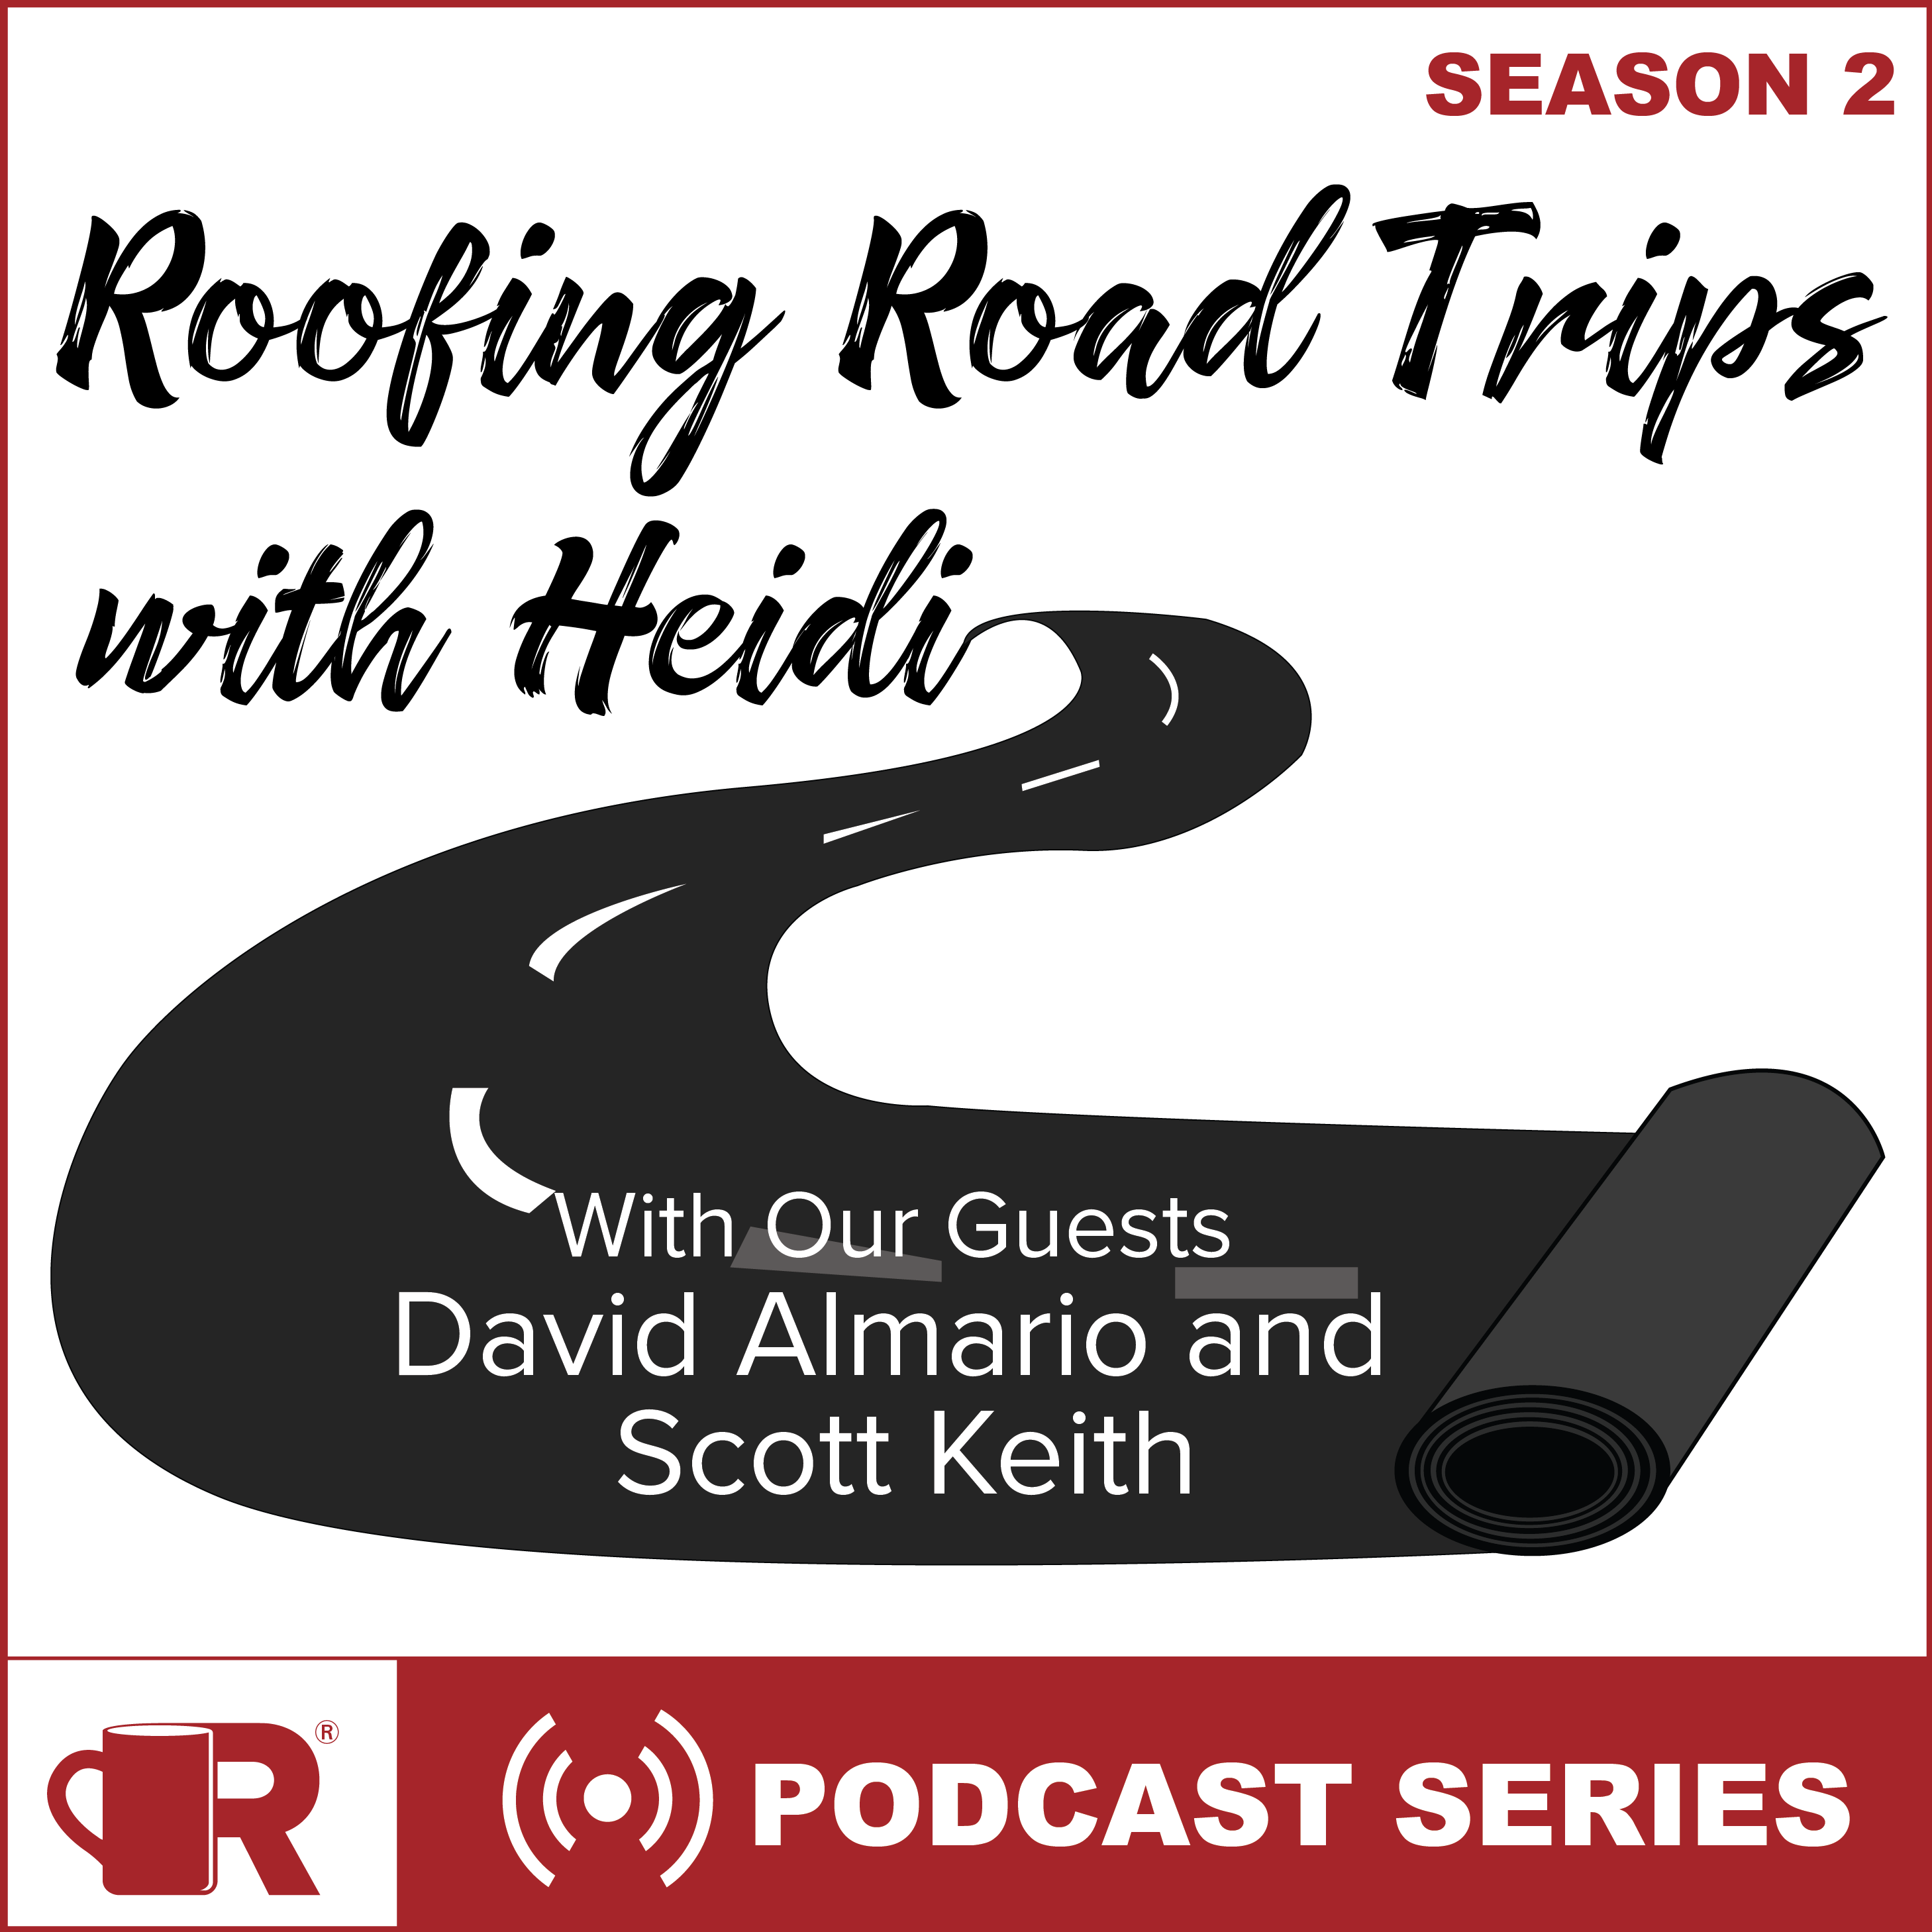 Roofing Road Trips with Heidi with Special Guests David Almario and Scott Keith